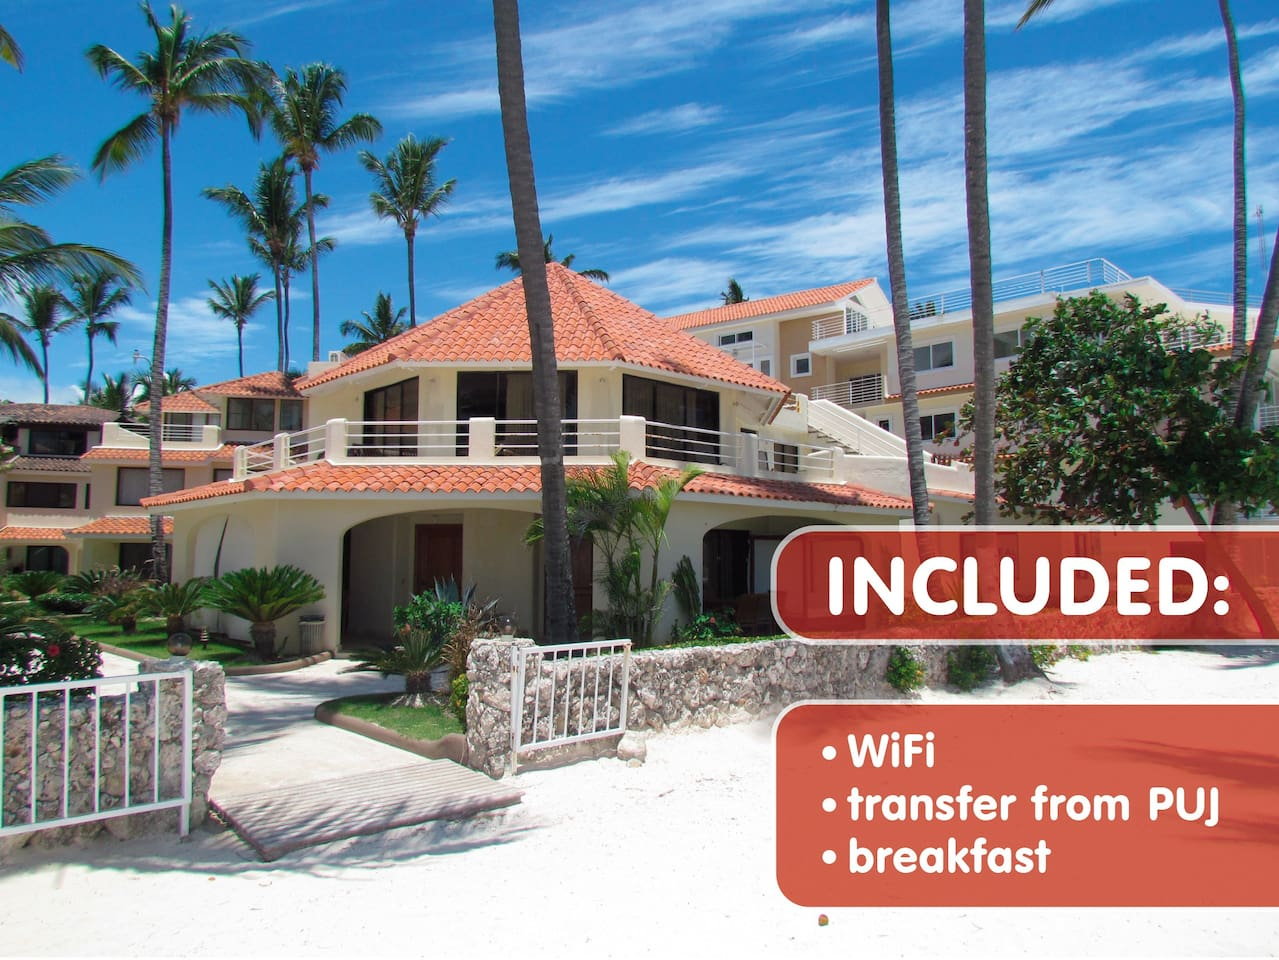 Autumn discounts (01-Oct-15 - 15-Dec-15): wifi for all guests, pick-up for booking from 5 nights, breakfast at beach cafe for the first morning for those who use instant booking.